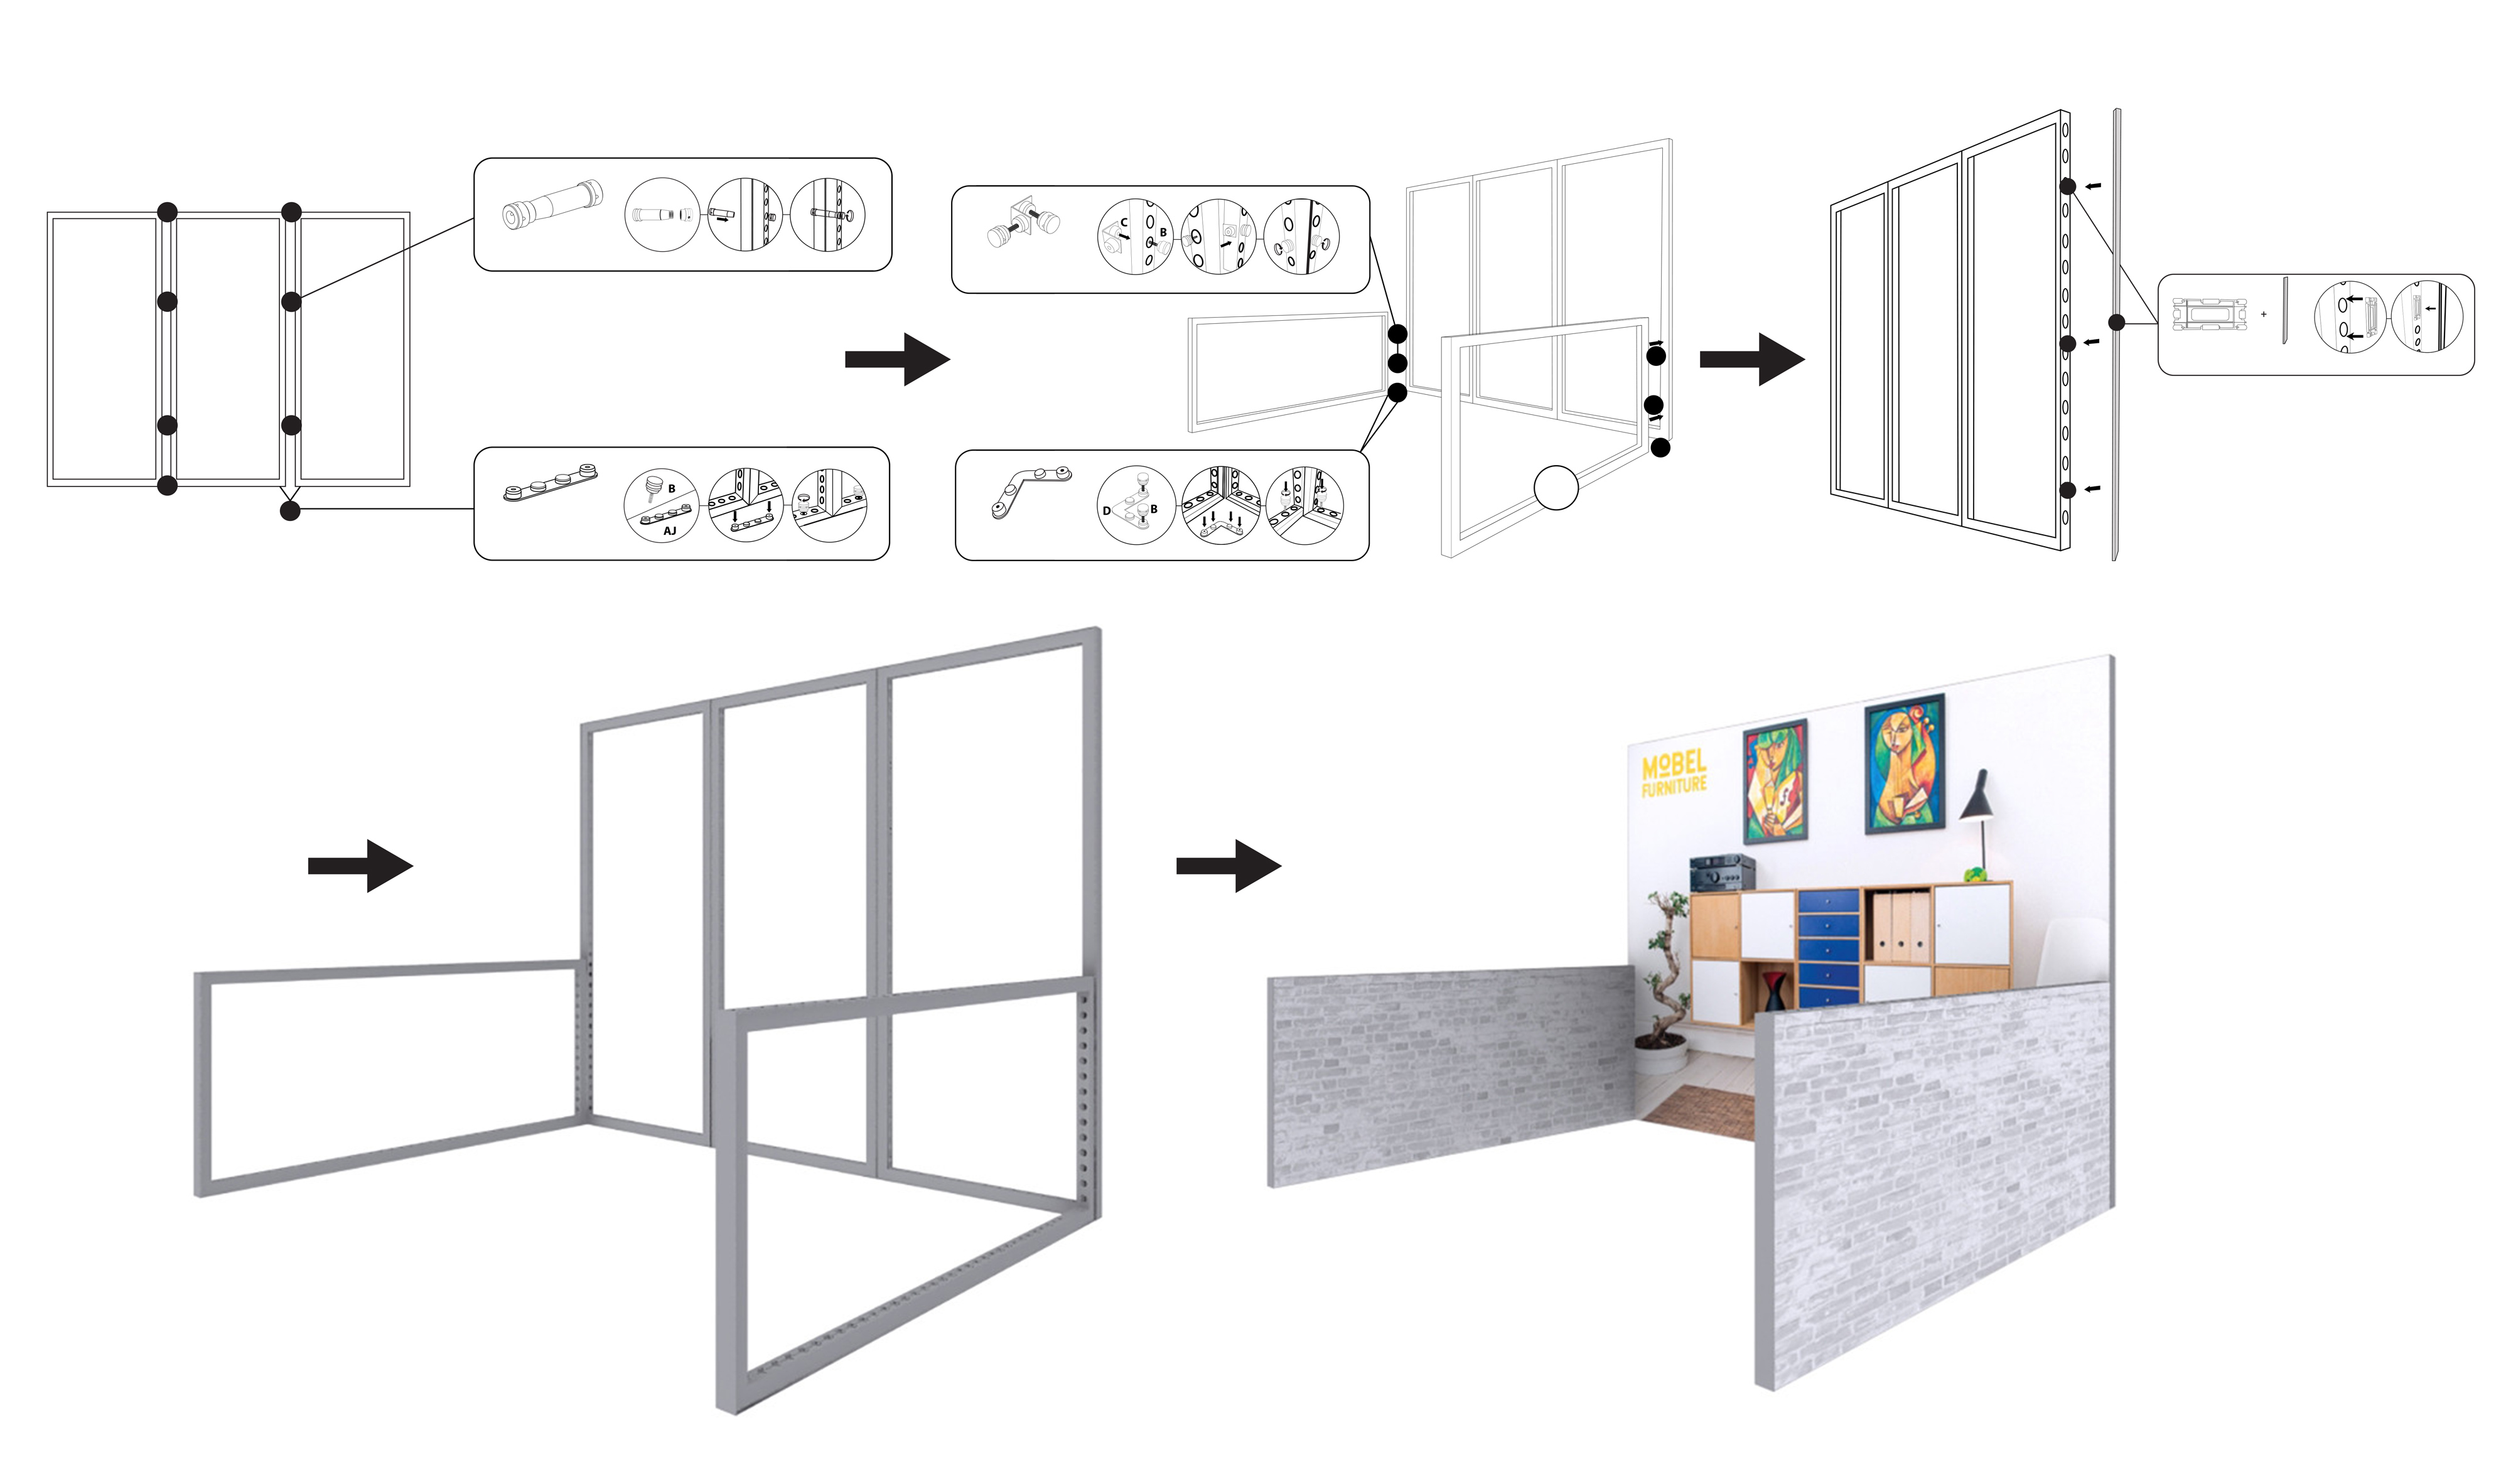 How to Assemble Modco Modular Trade Show Booths